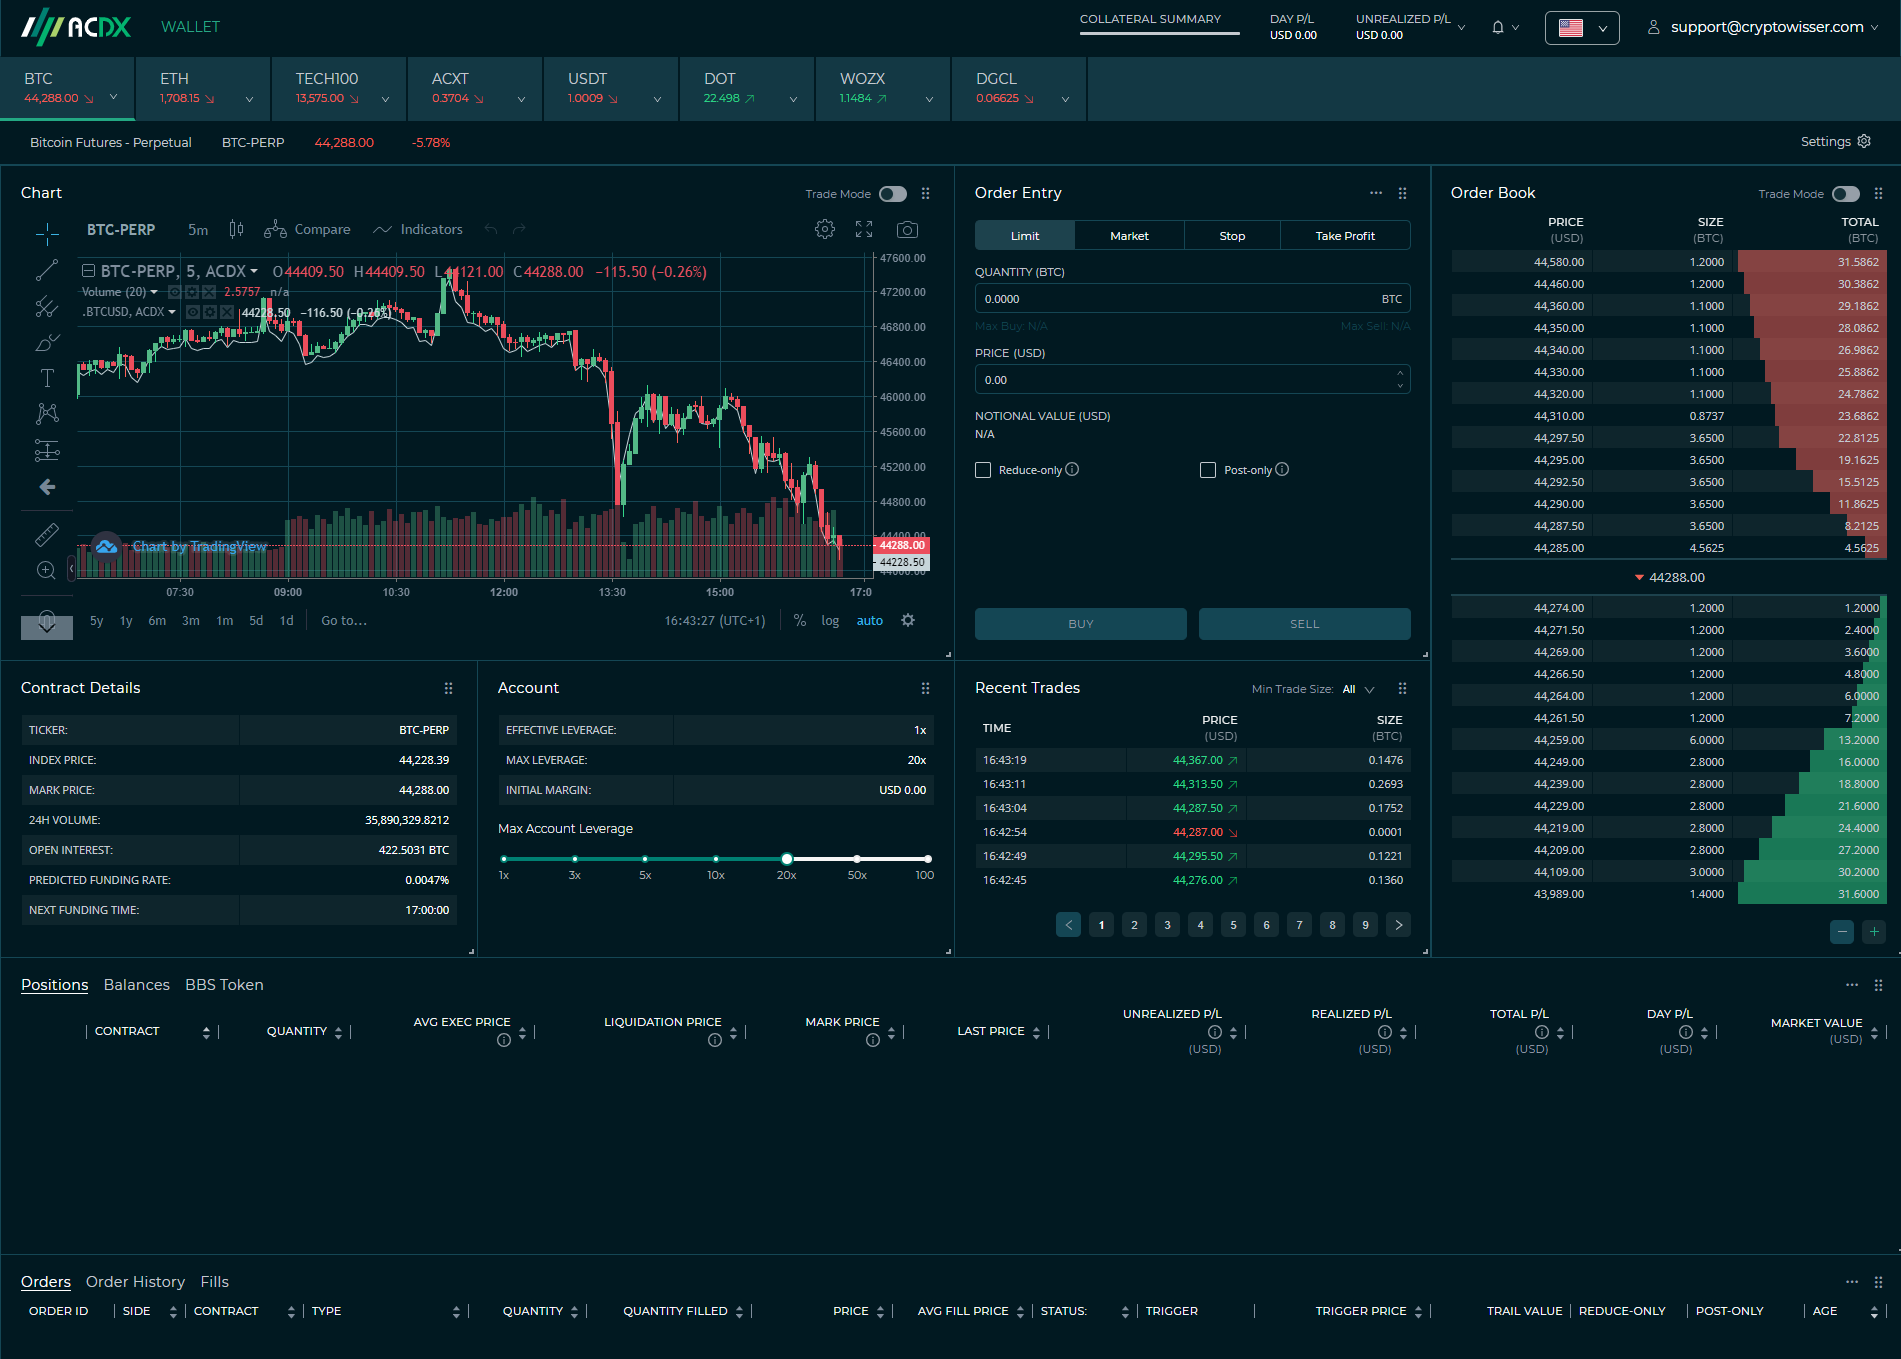 ACDX Exchange Trading View